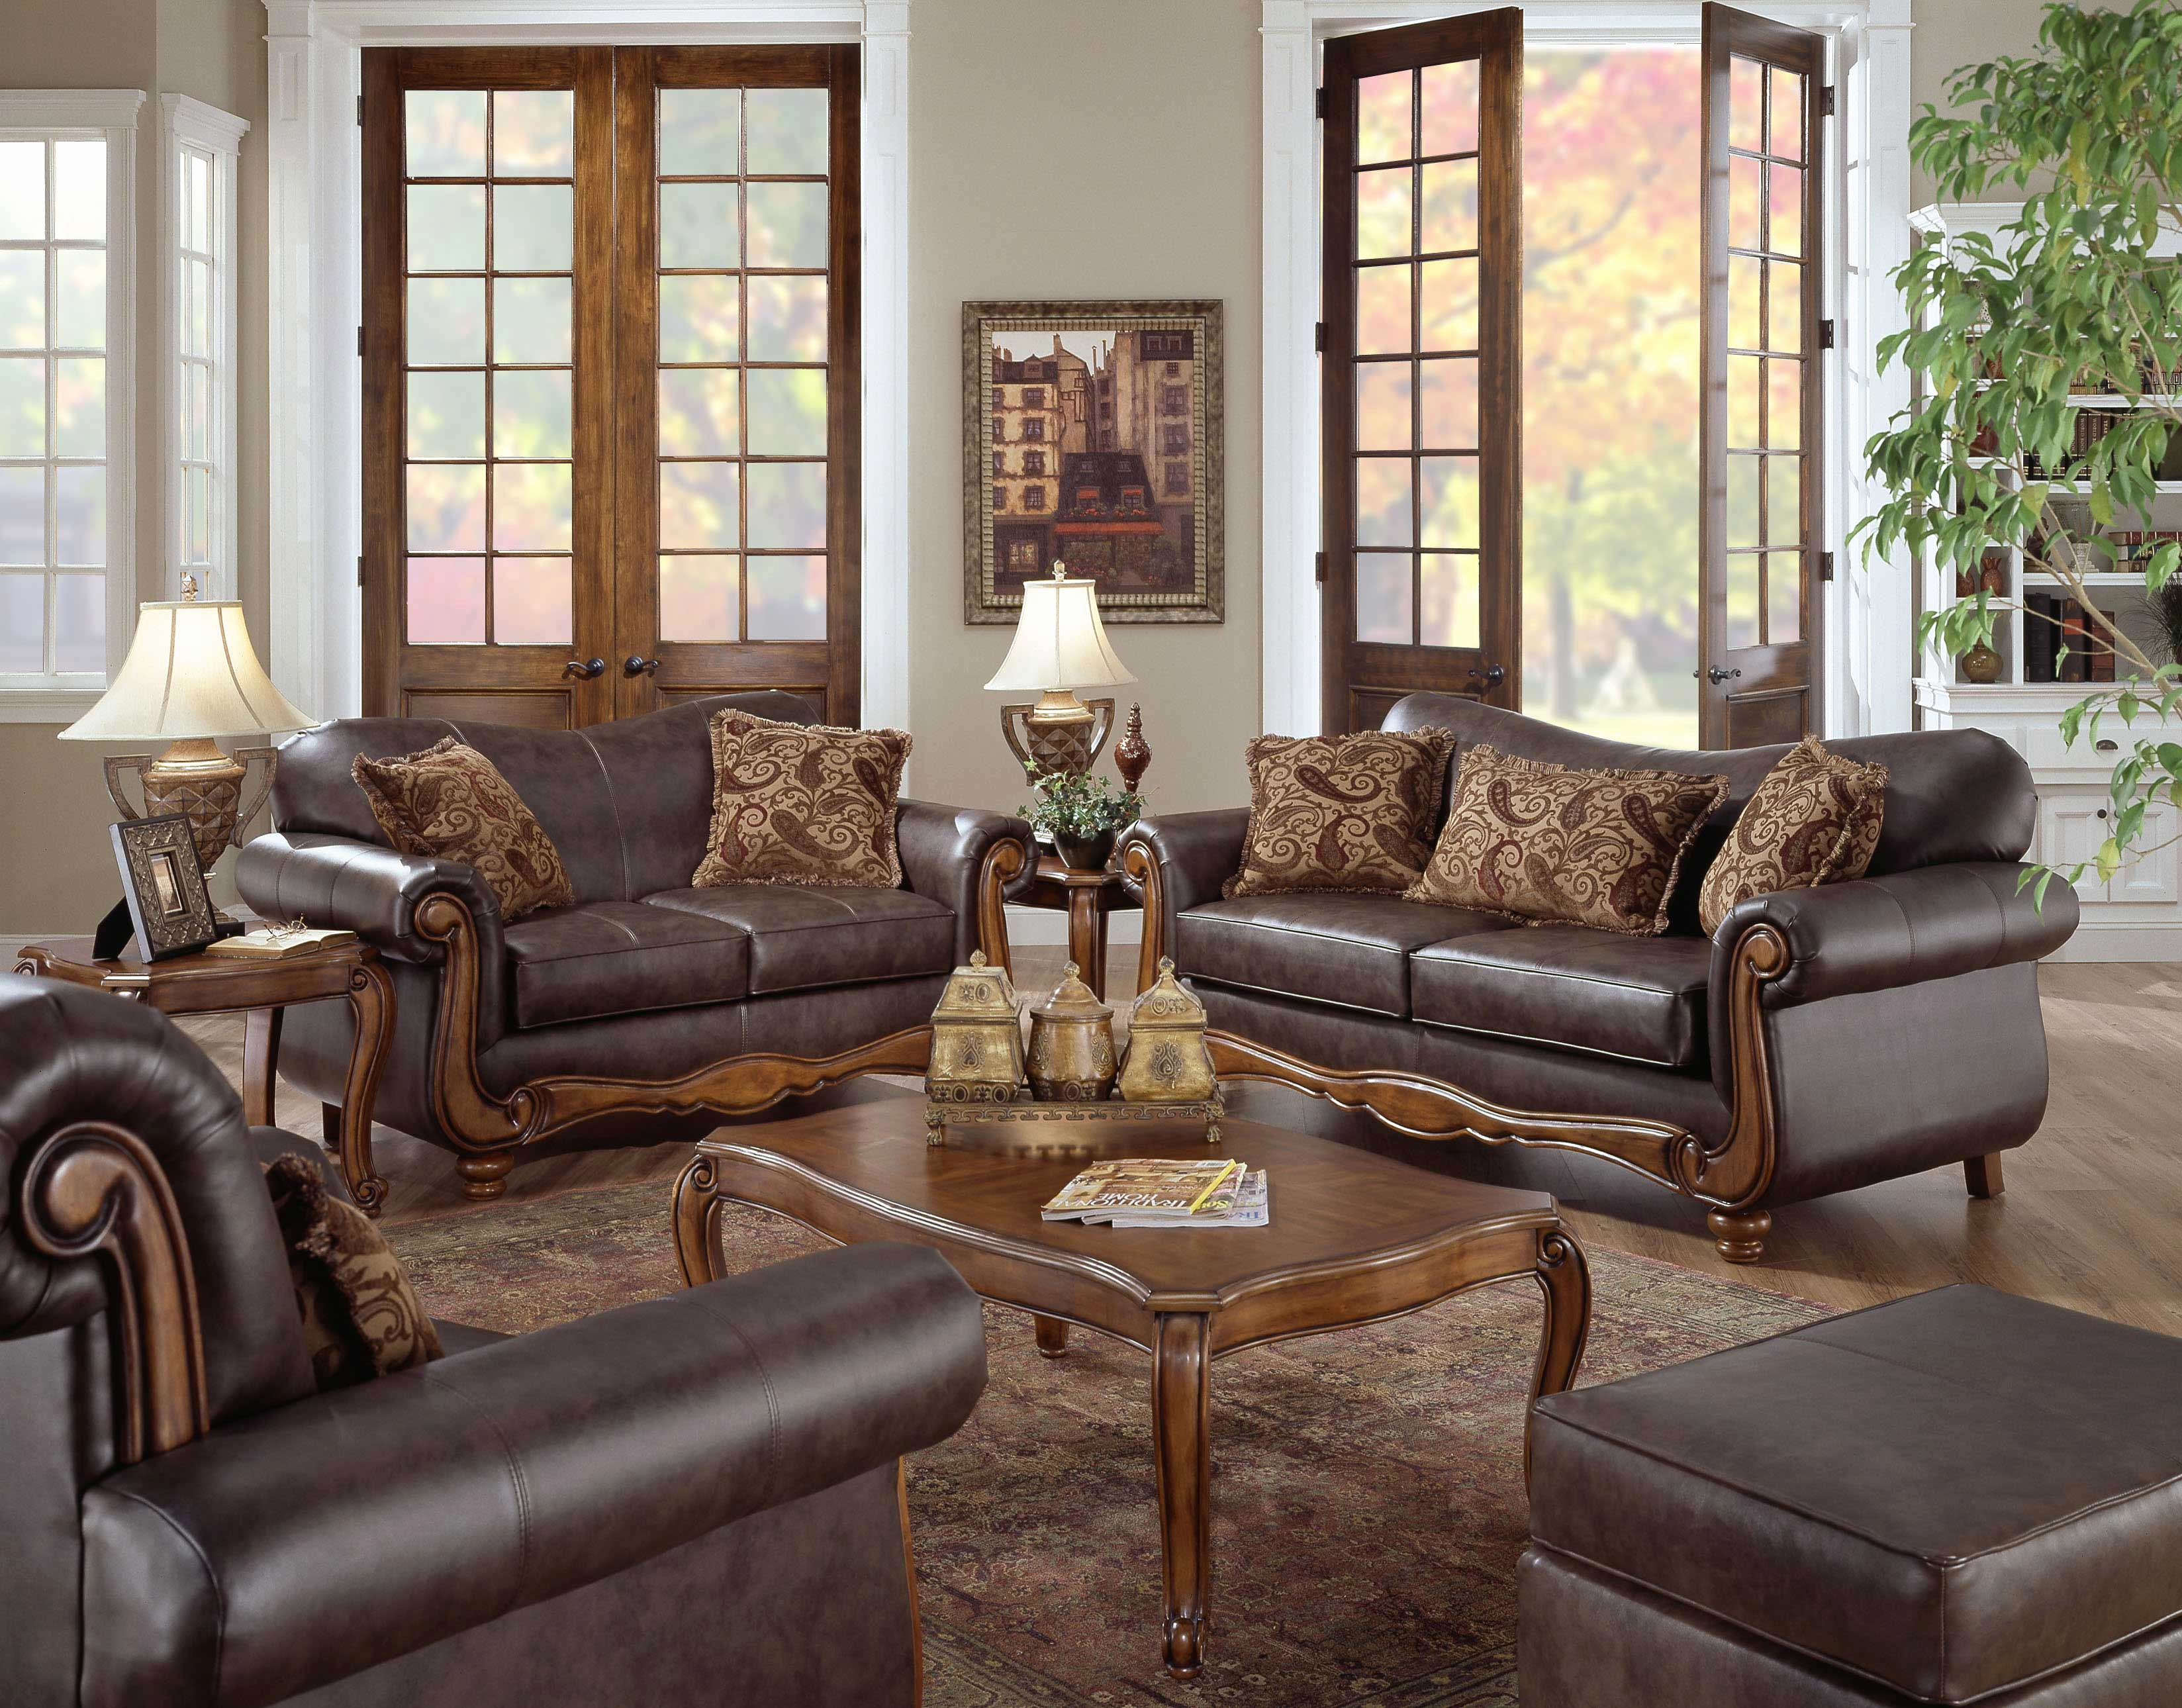 Discount Furniture Sets Living Room Luxury Cheap Living Room Sets regarding Living Room Sets Under $500